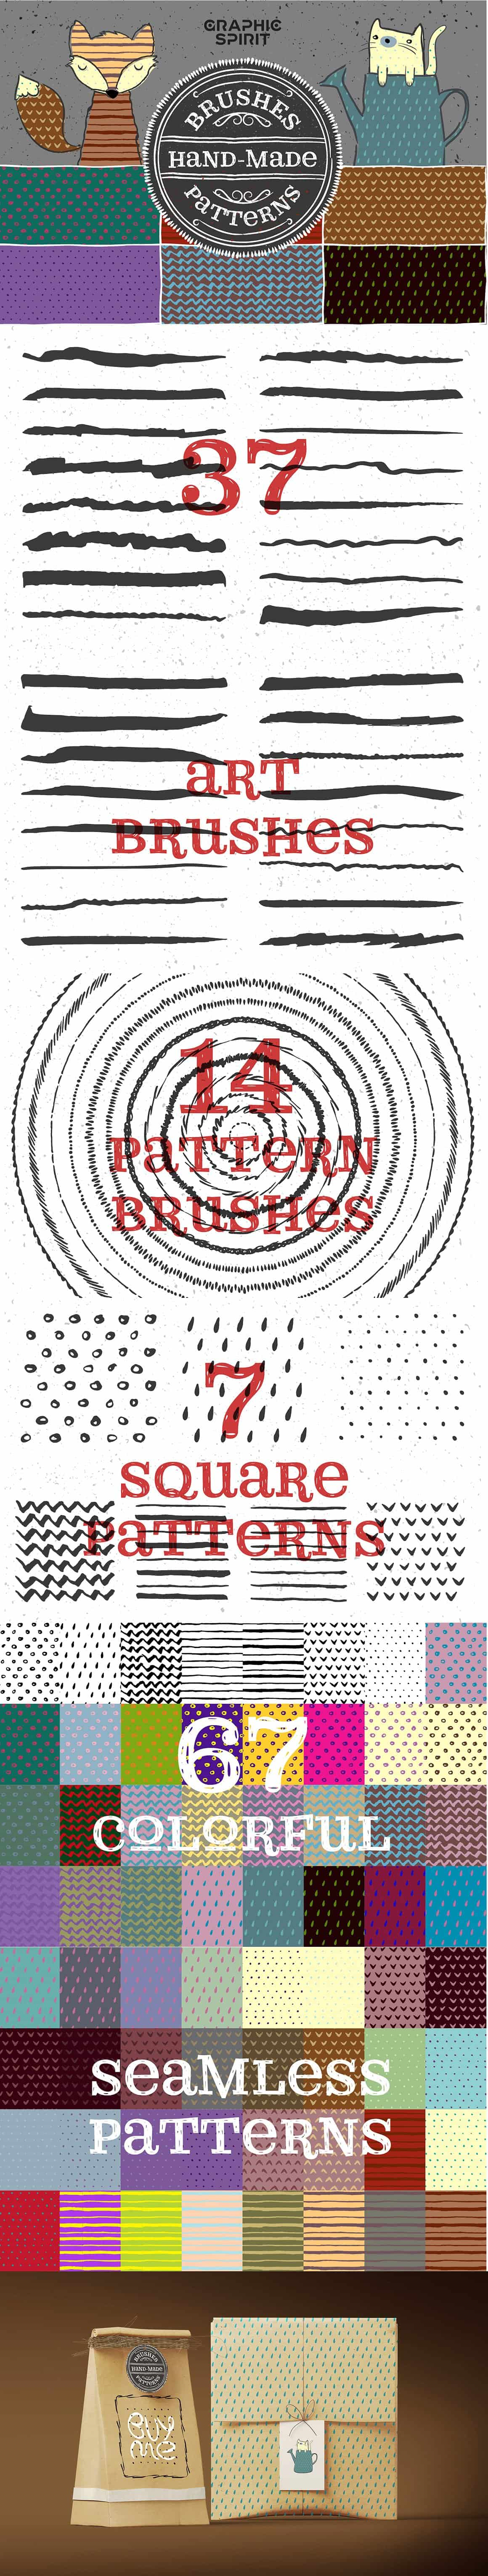 12 in 1 Adobe Illustrator Add-ons Bundle - just $27 - hand made brushes patterns 0 min